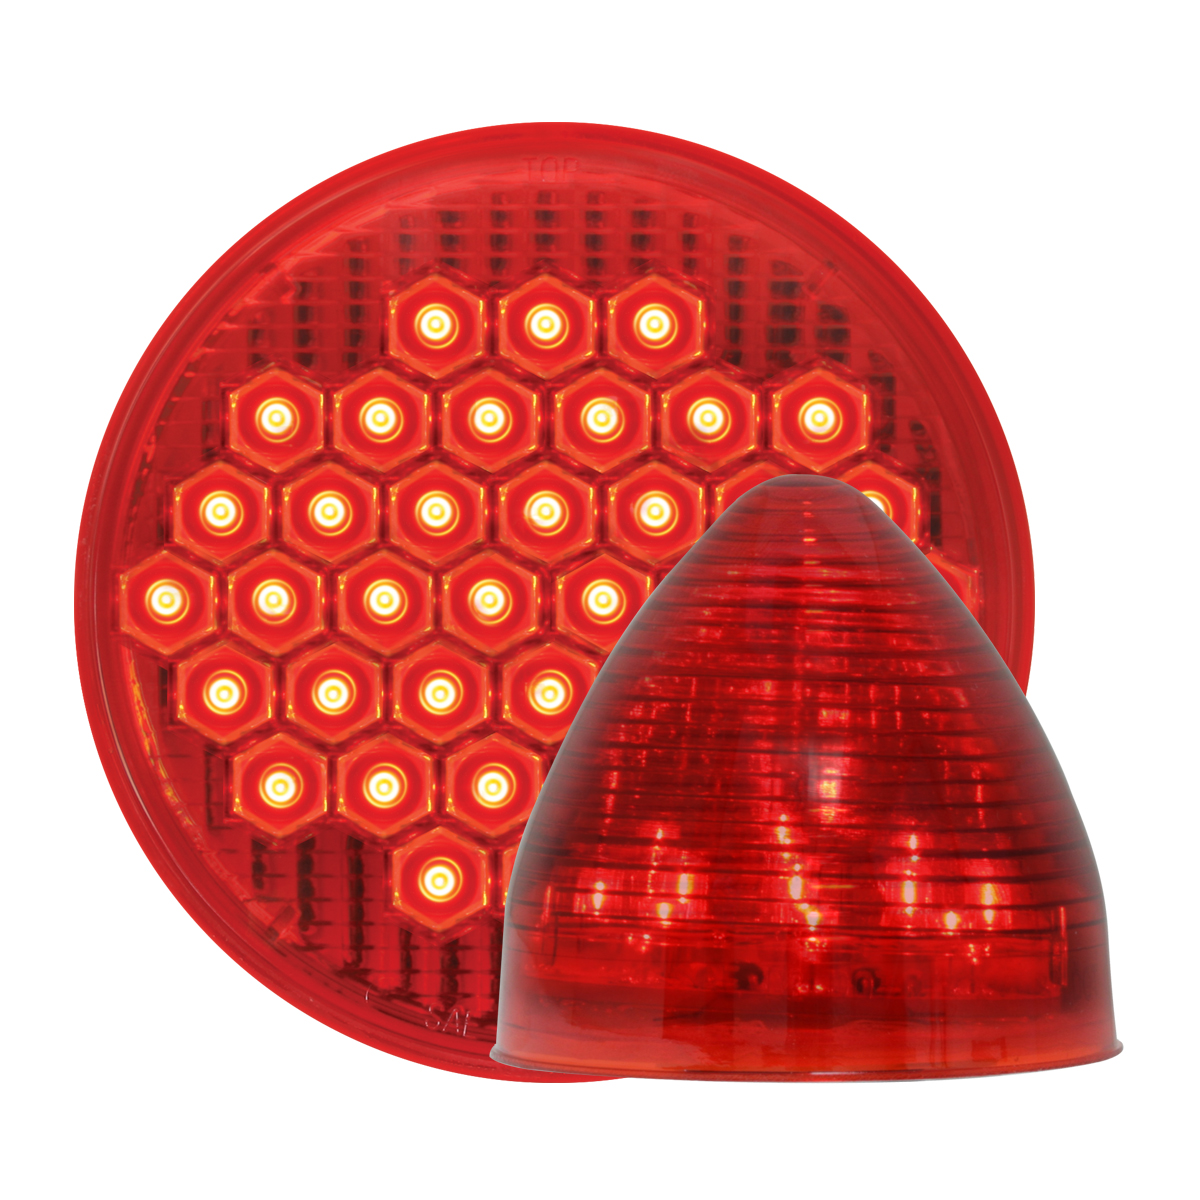 #87700/#79311 High Count LED Red/Red - Beehive